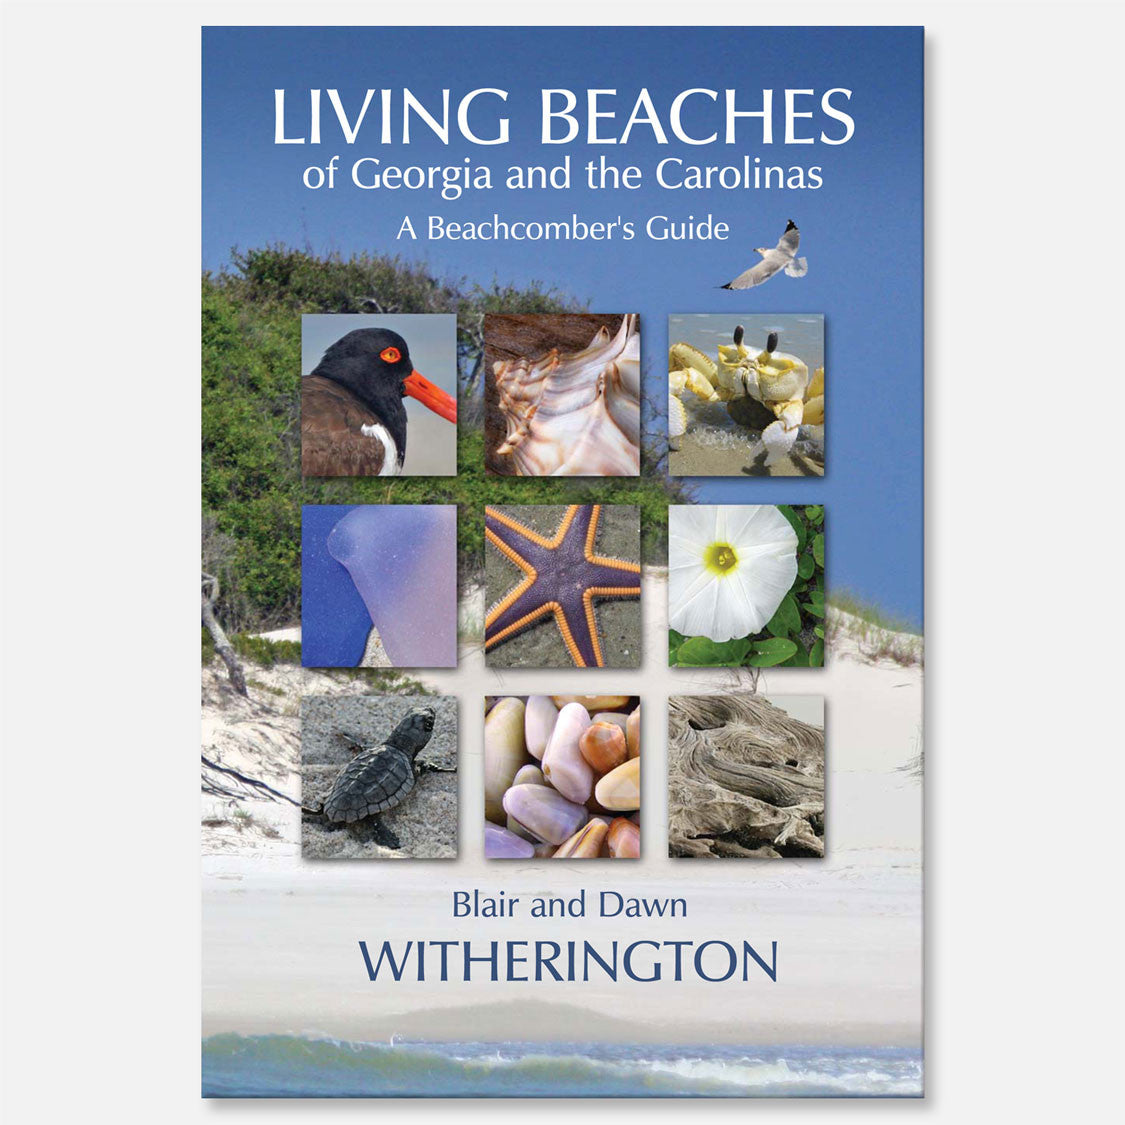 Living Beaches of Georgia and the Carolina's by Blair and Dawn Witherington